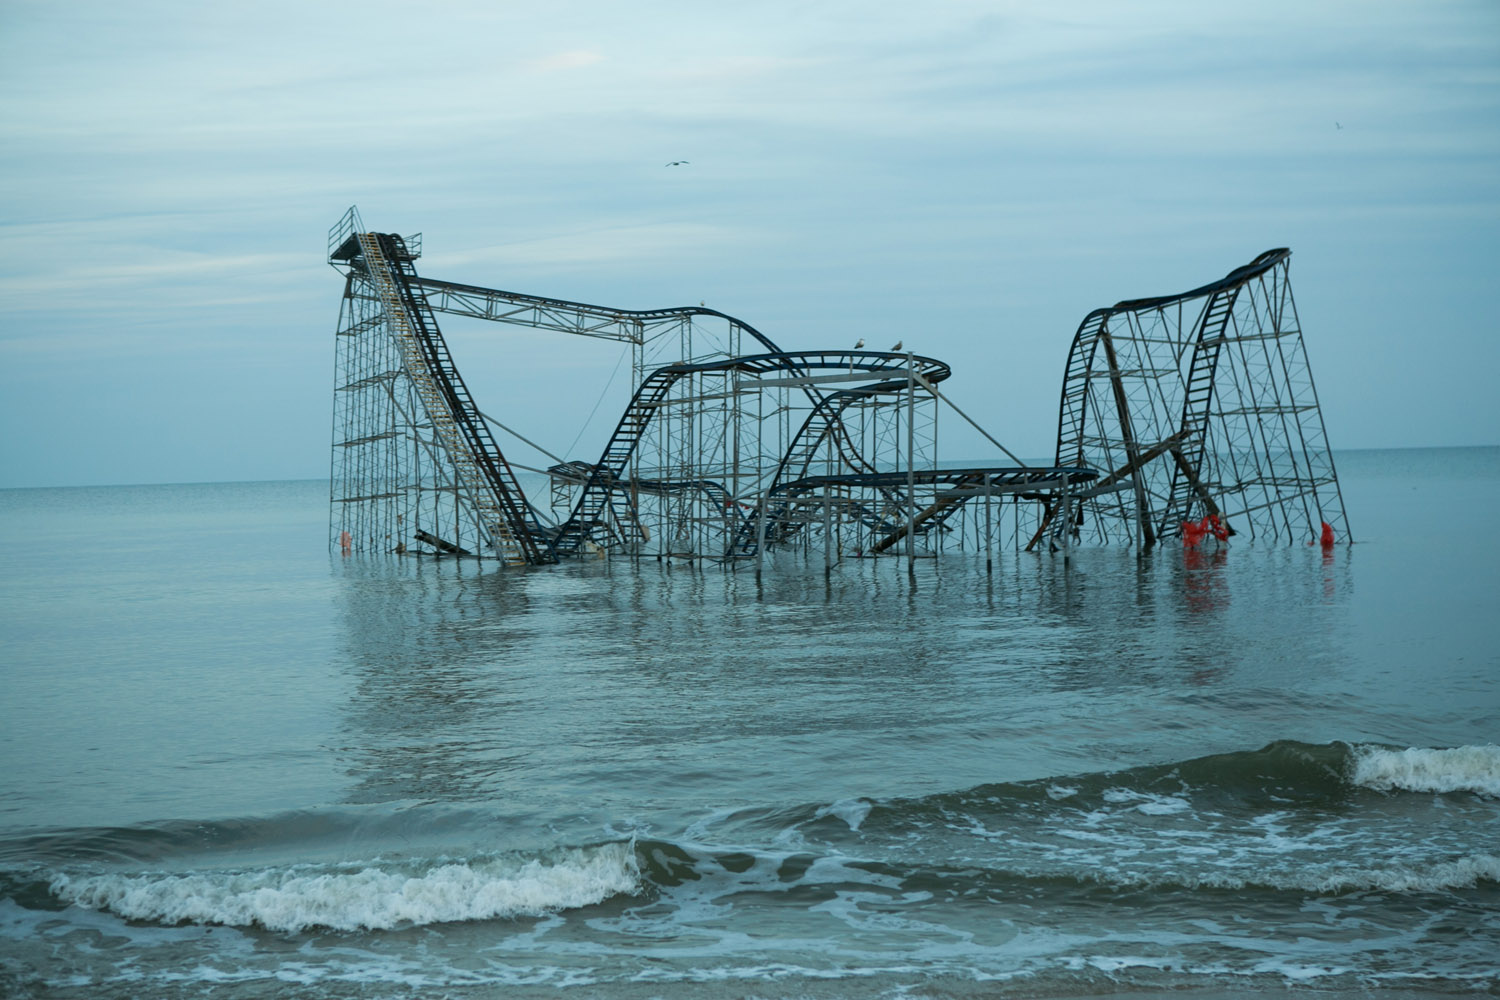 Jan. 5, 2013. The roller coaster knocked off the amusement pier by Hurricane Sandy is seen partially submerged in the Atlantic Ocean in Seaside Heights, New Jersey.